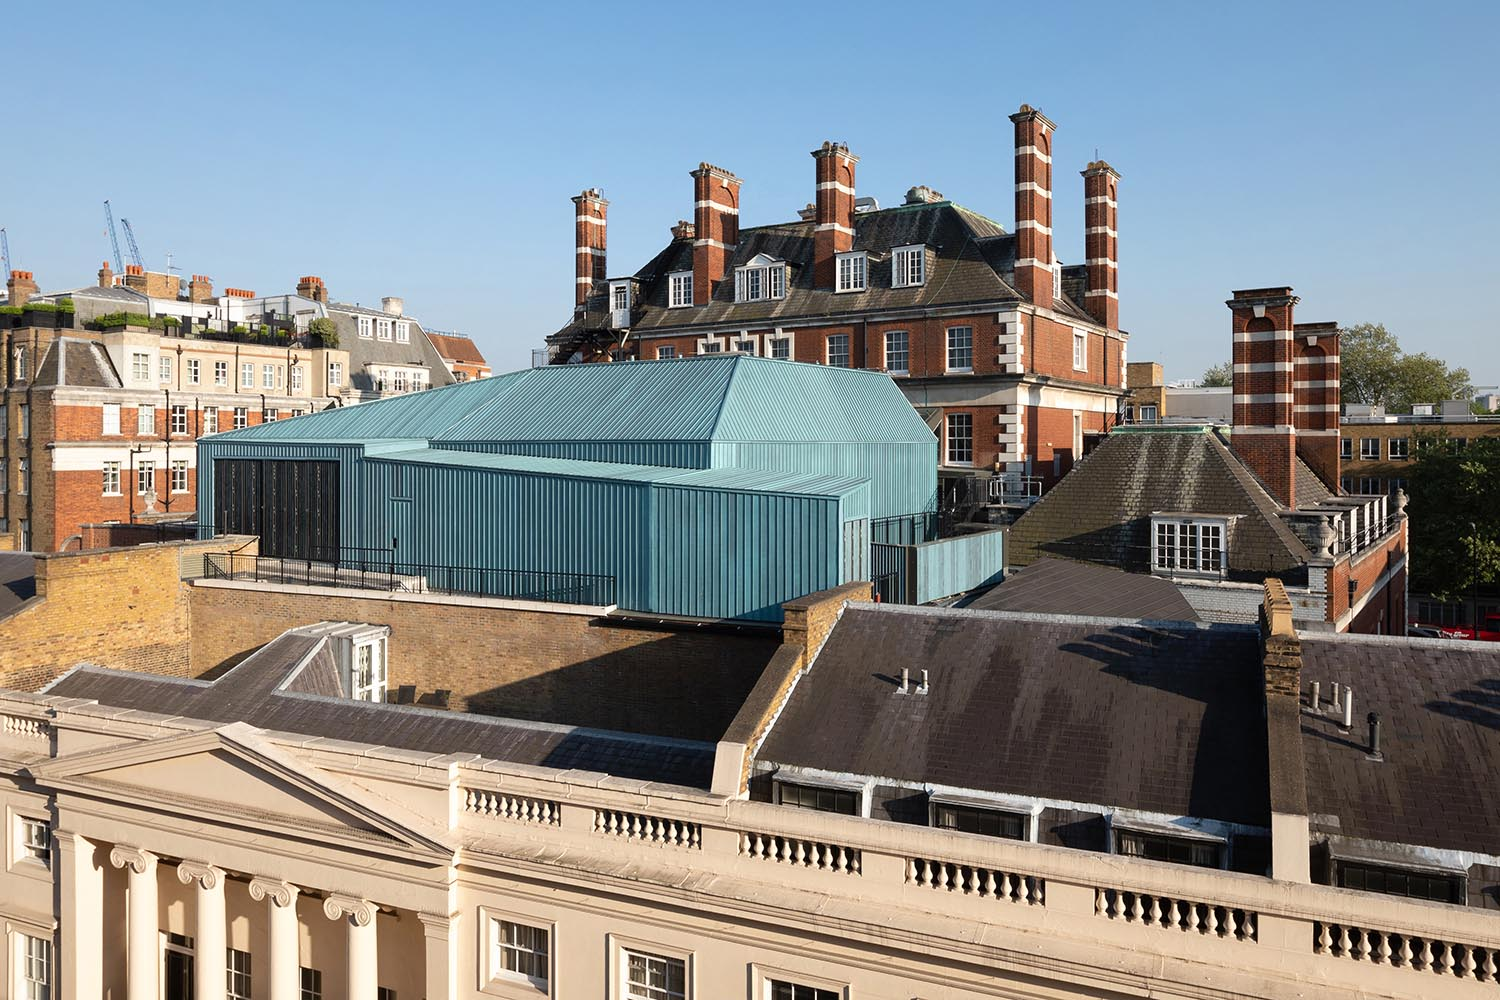 The new Recital Hall within its listed building setting, clad in blue pre-patinated copper and entirely imperceptible from street level Adam Scott